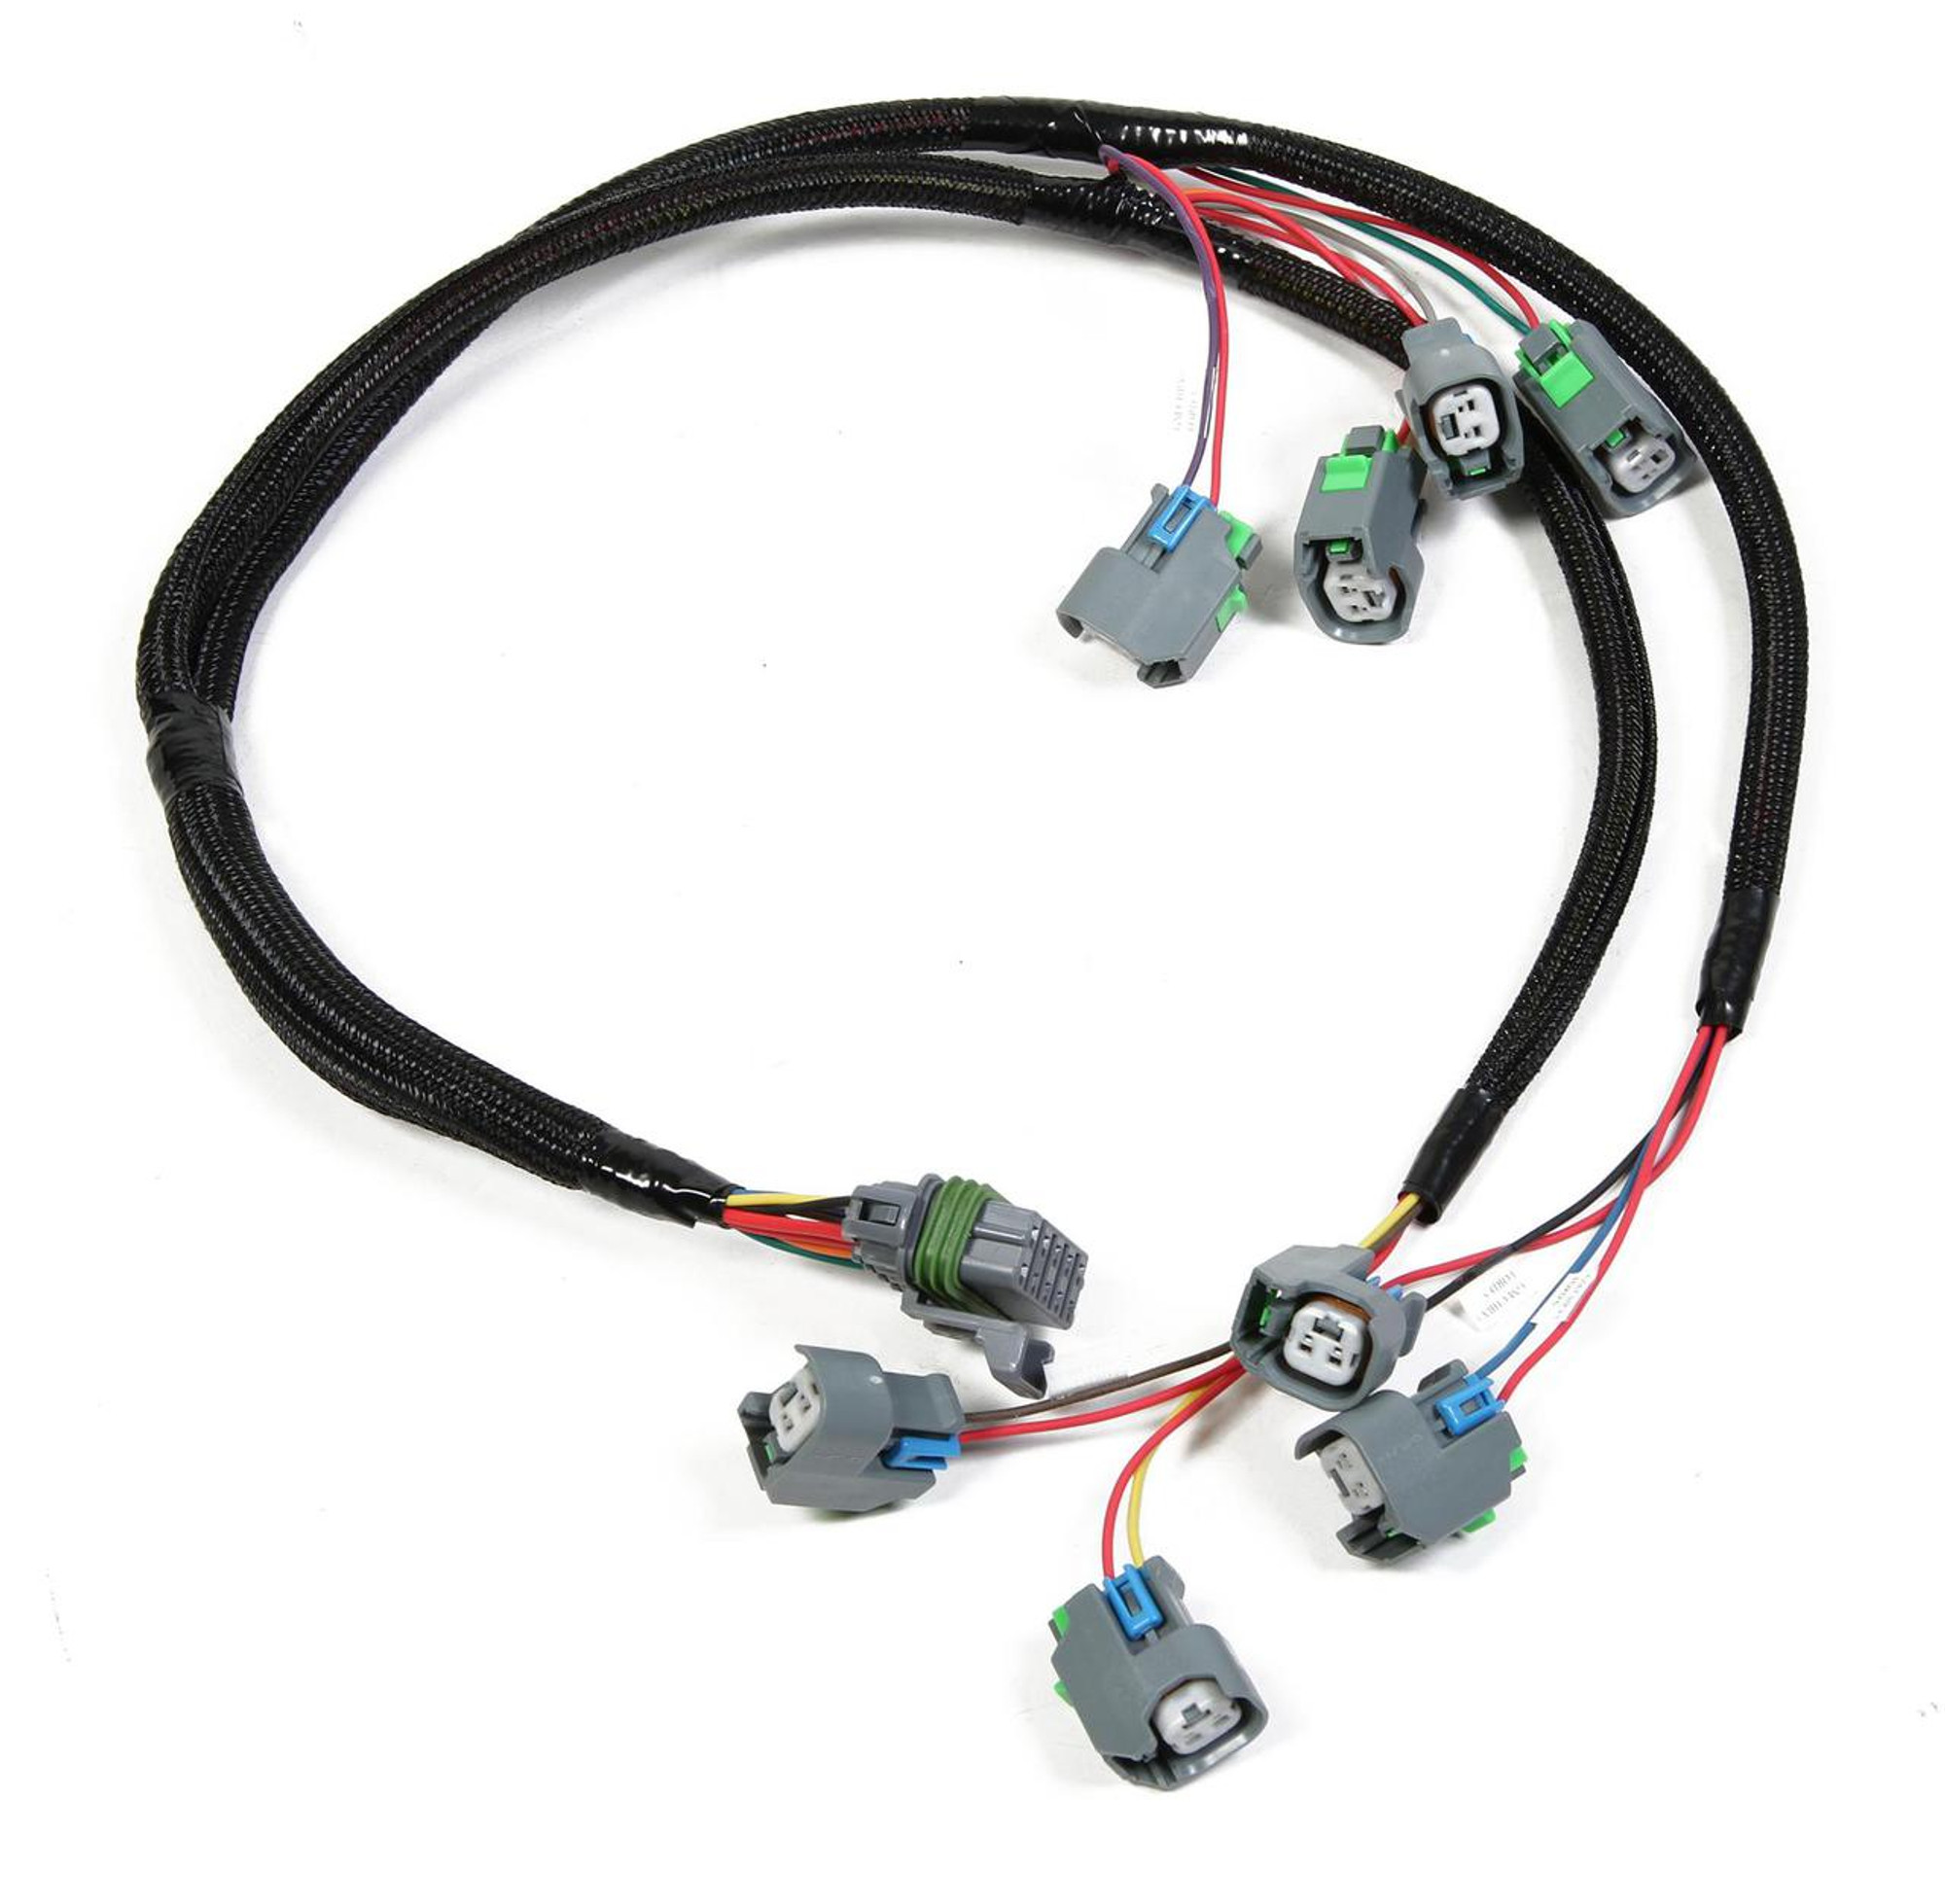 hight resolution of holley fuel injection wiring harness for lsx engines part hly 558 fuel injector wiring harness ford fuel injector wiring harness